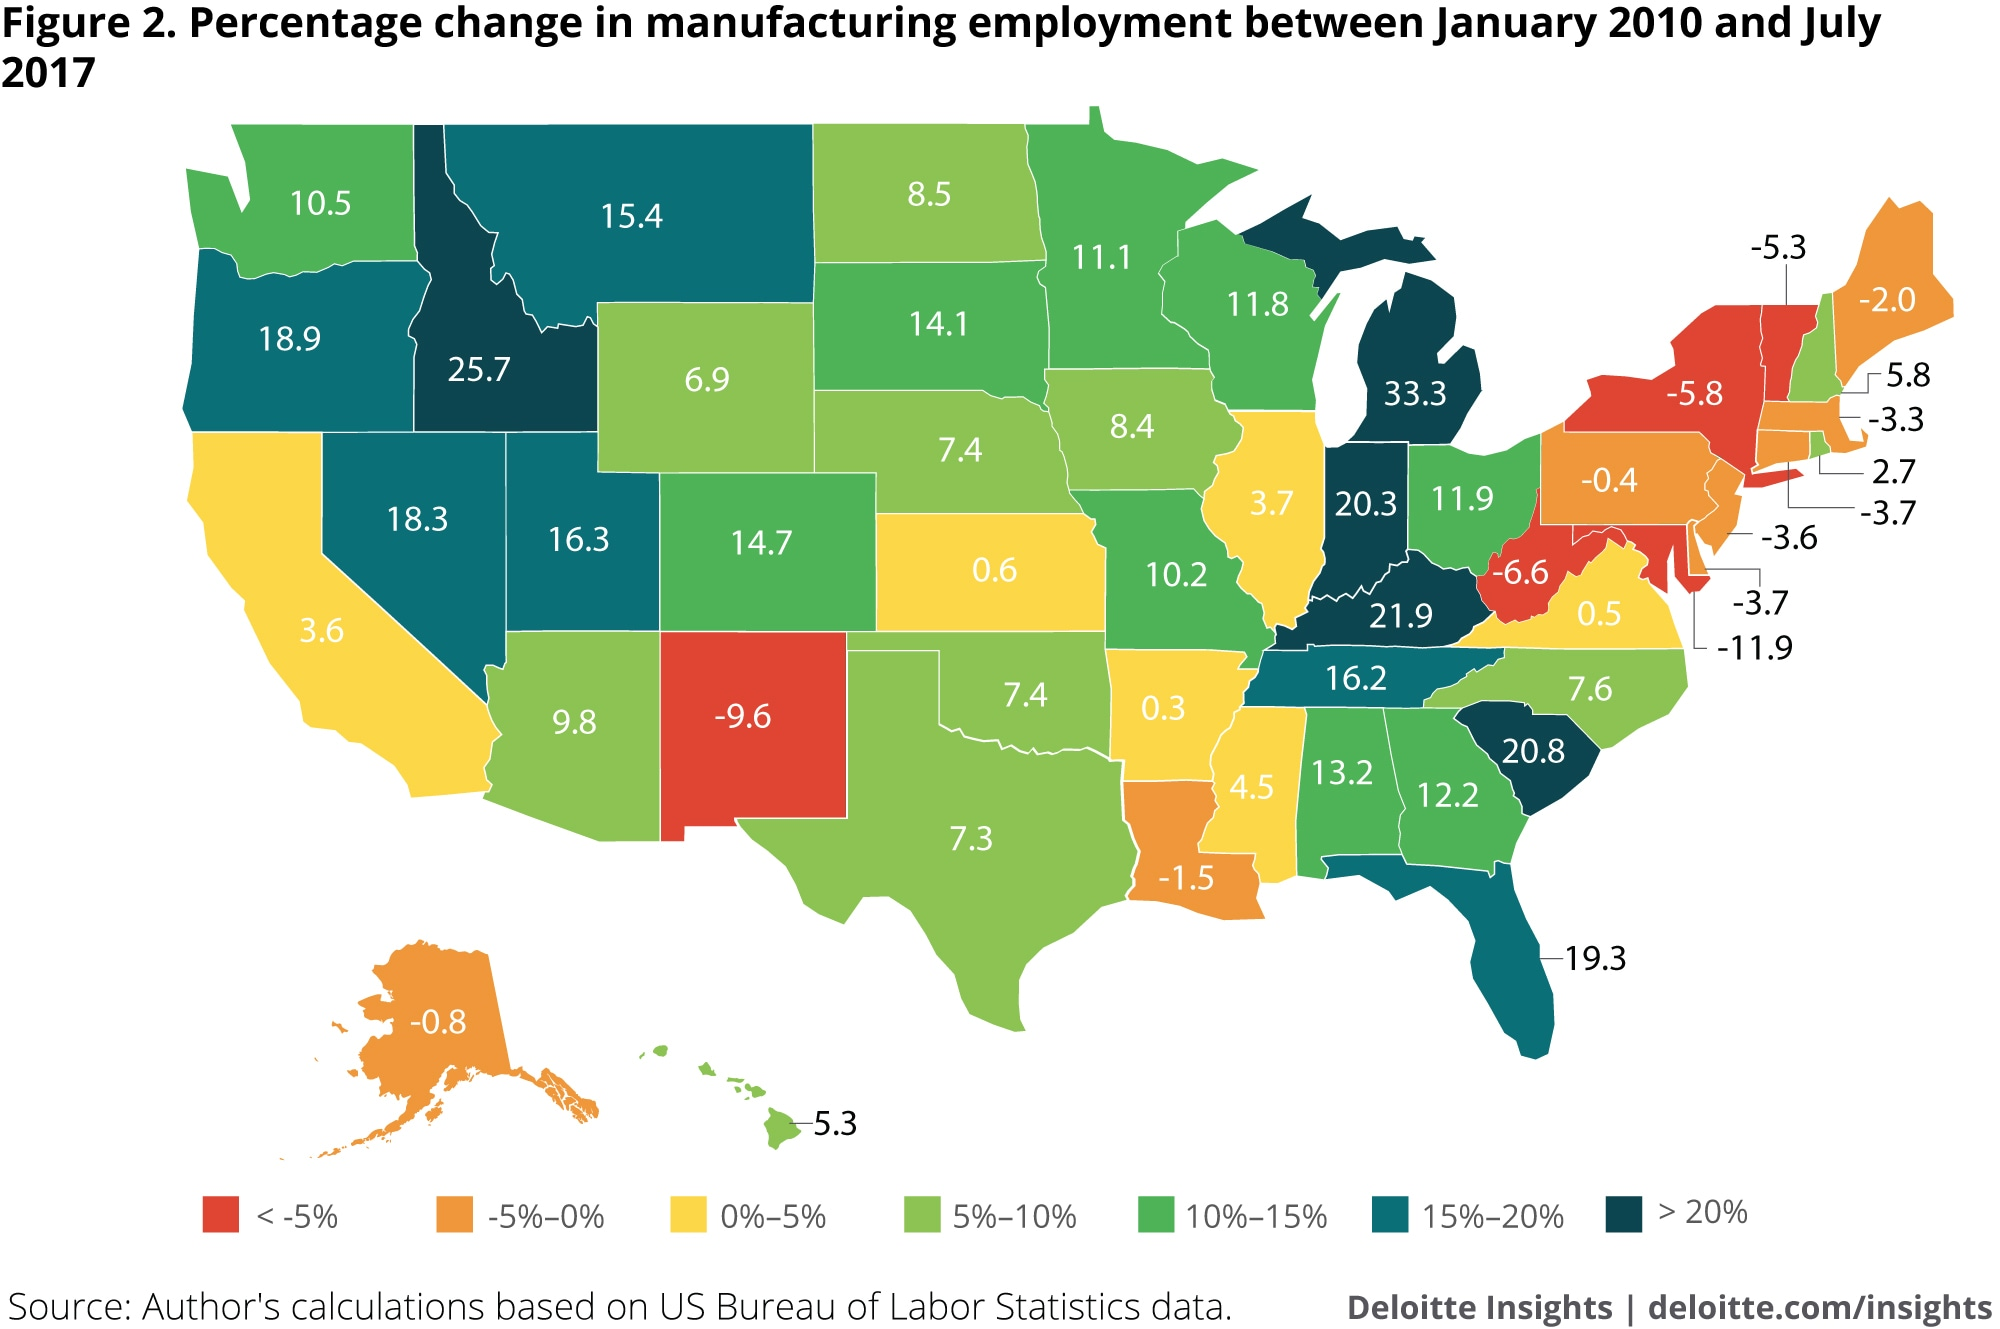 Percentage change in manufacturing employment between January 2010 and July 2017